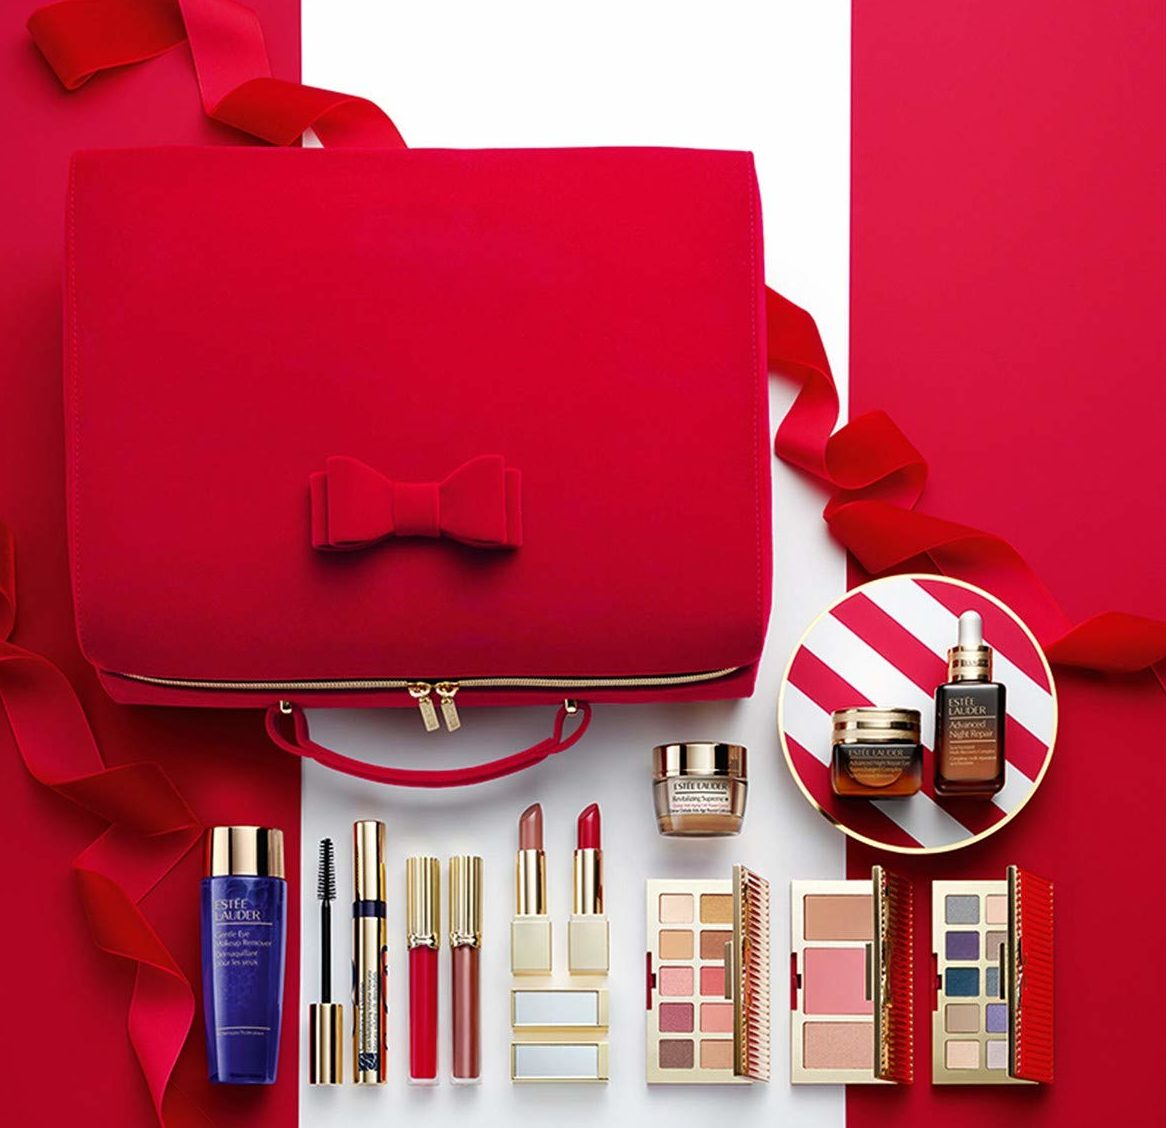 maid-of-honor-gifts-makeup